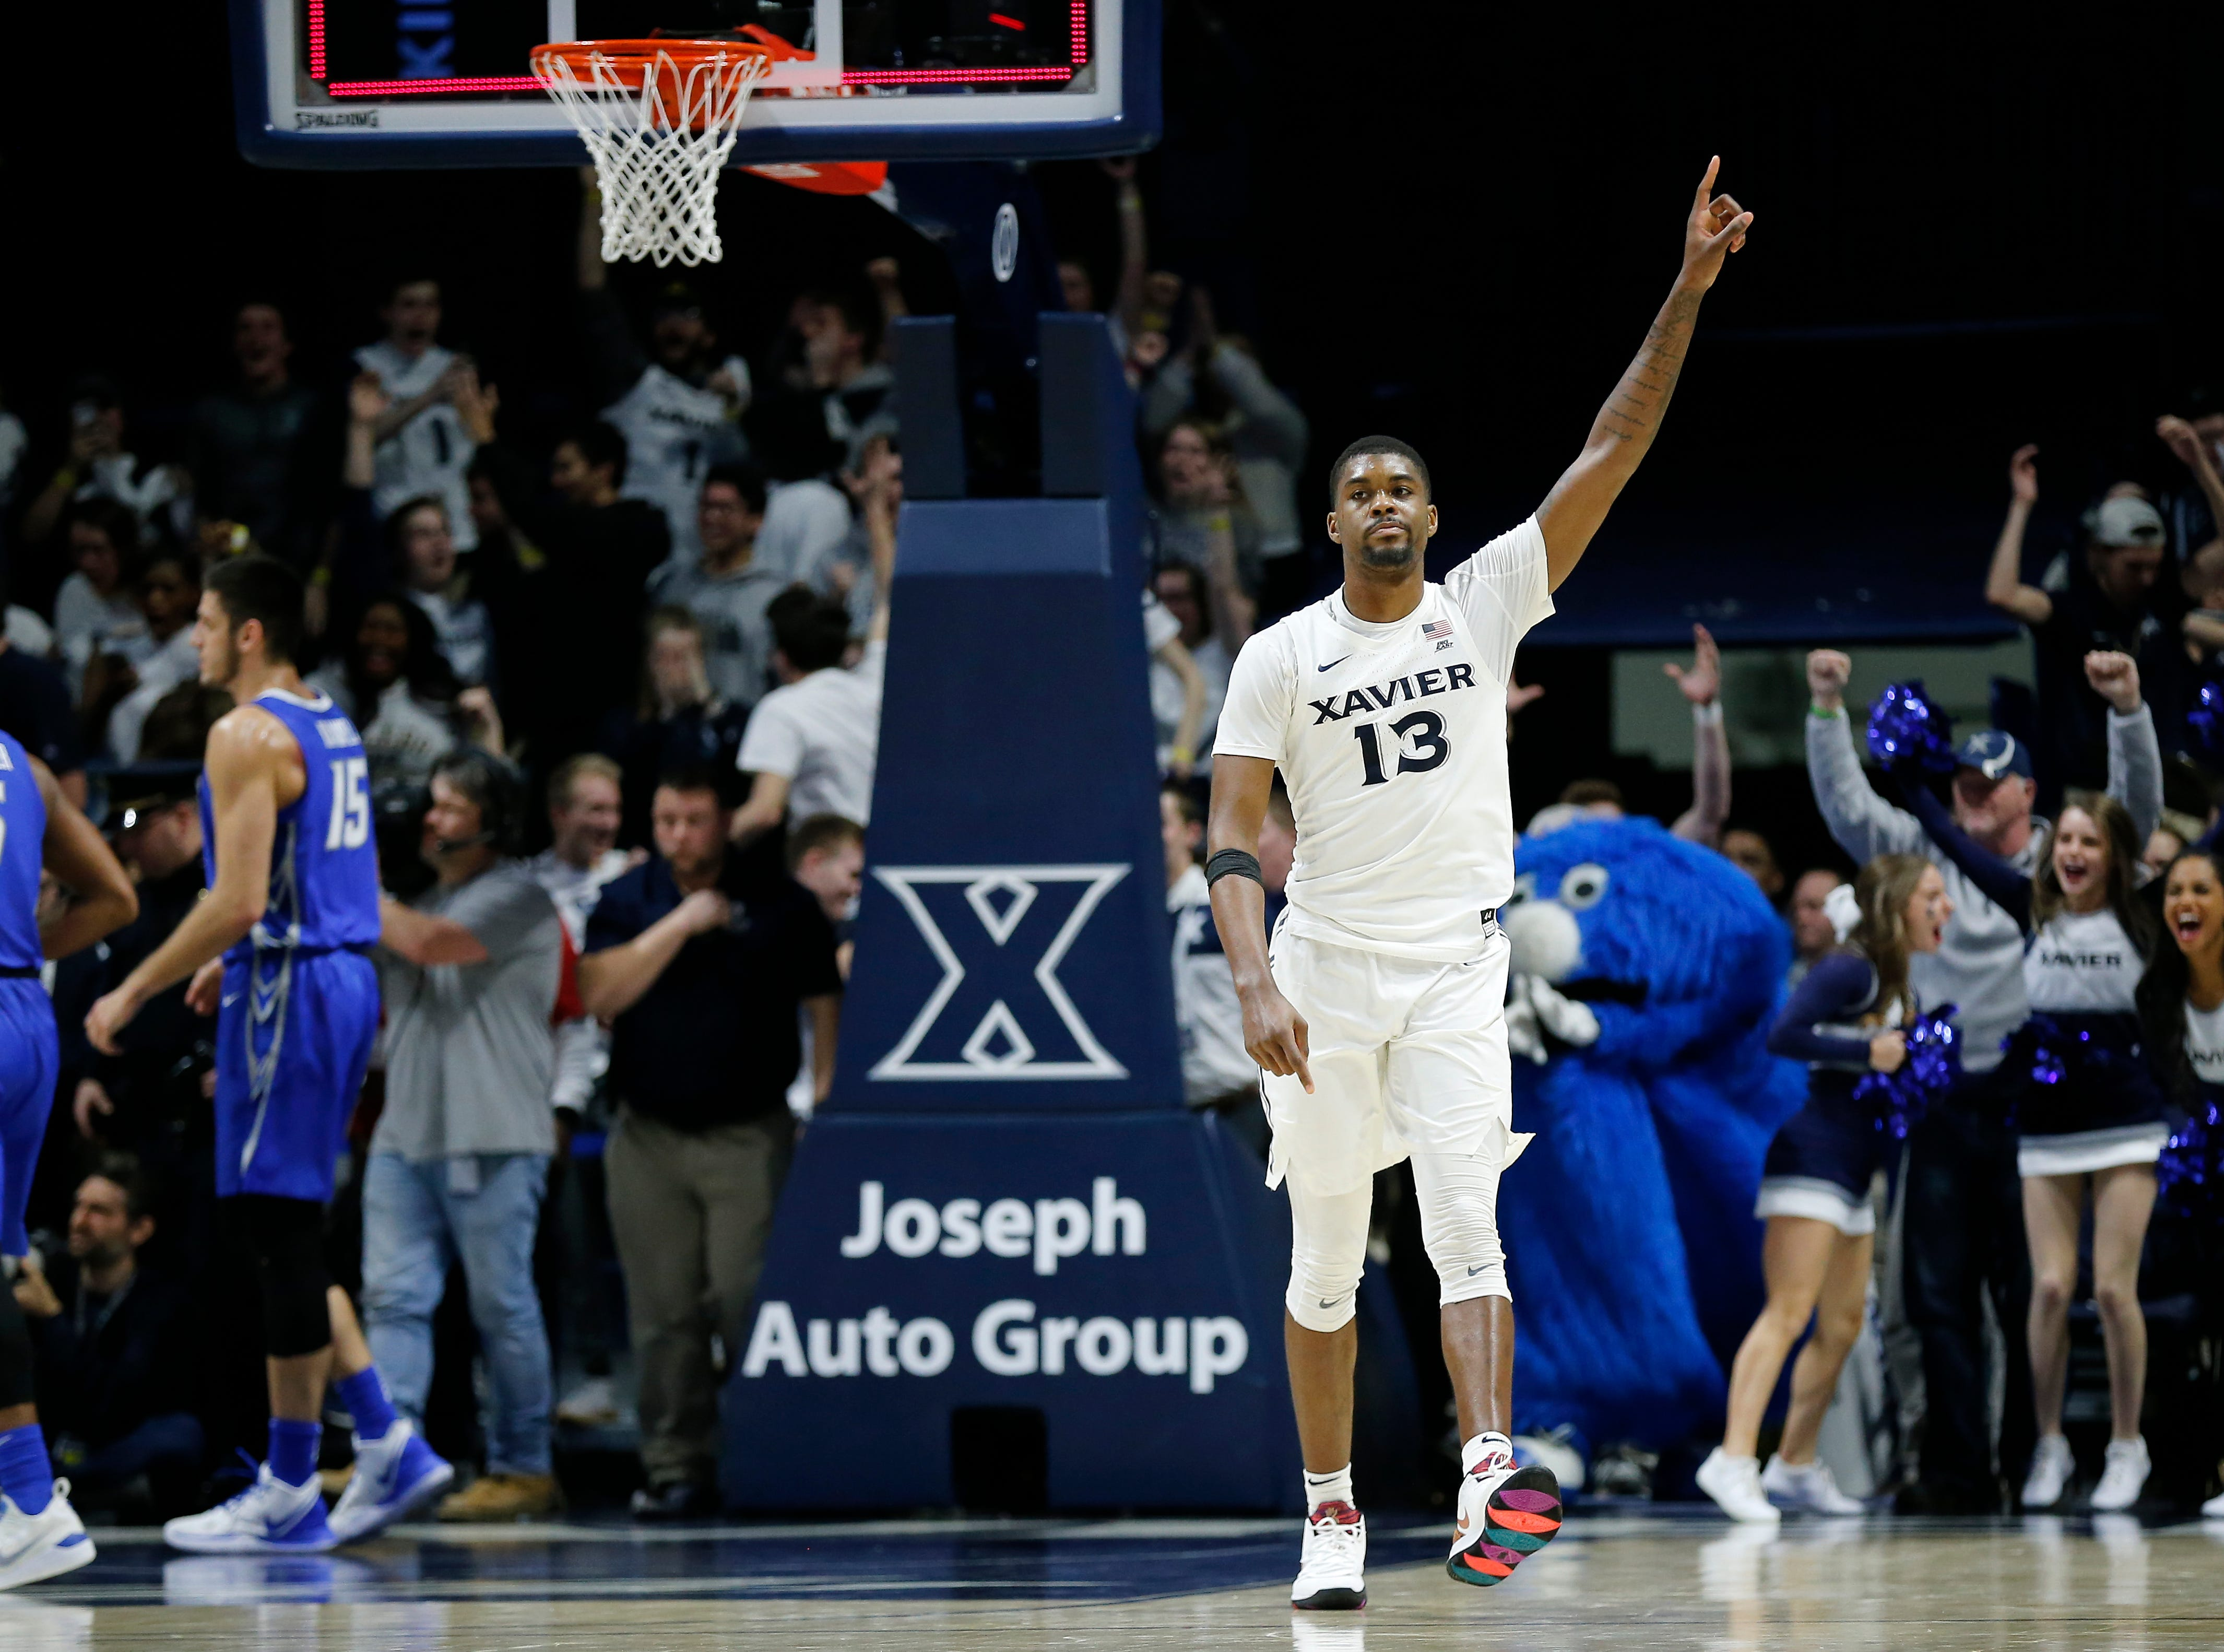 Xavier Musketeers forward Naji Marshall (13) celebrates at the final buzzer of overtime in the NCAA Big East Conference basketball game between the Xavier Musketeers and the Creighton Bluejays at Xavier's Cintas Center in Cincinnati on Thursday, Feb. 14, 2019. Xavier broke a 6-game losing streak with a 64-61 overtime win over Creighton.